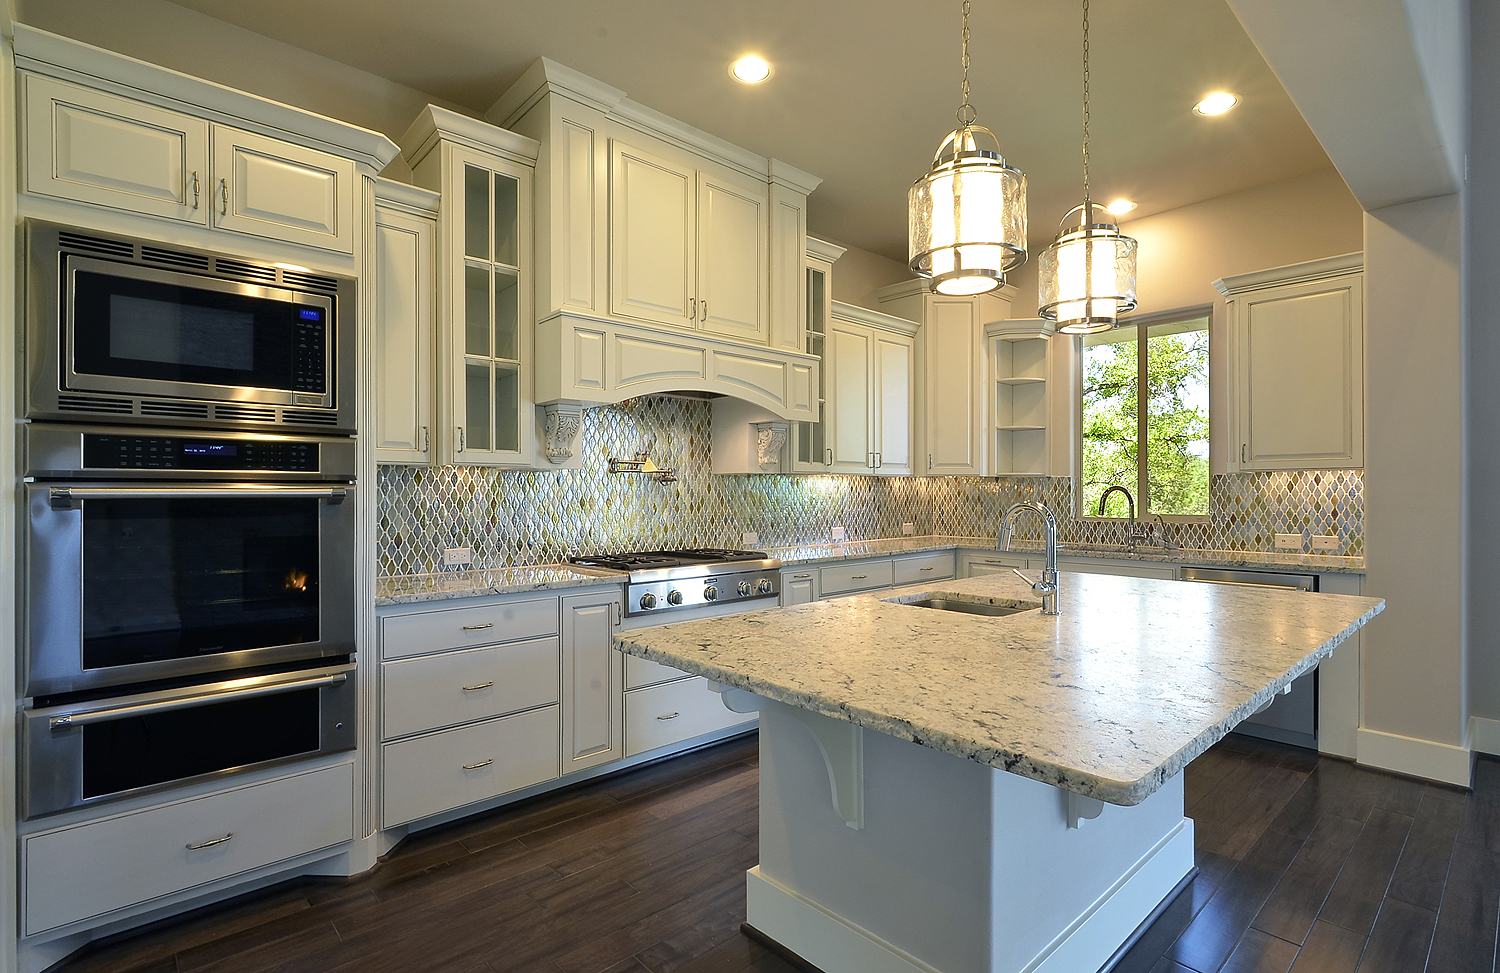 Merveilleux White Kitchen With Marble Kithen Island And Wood Vent Hood